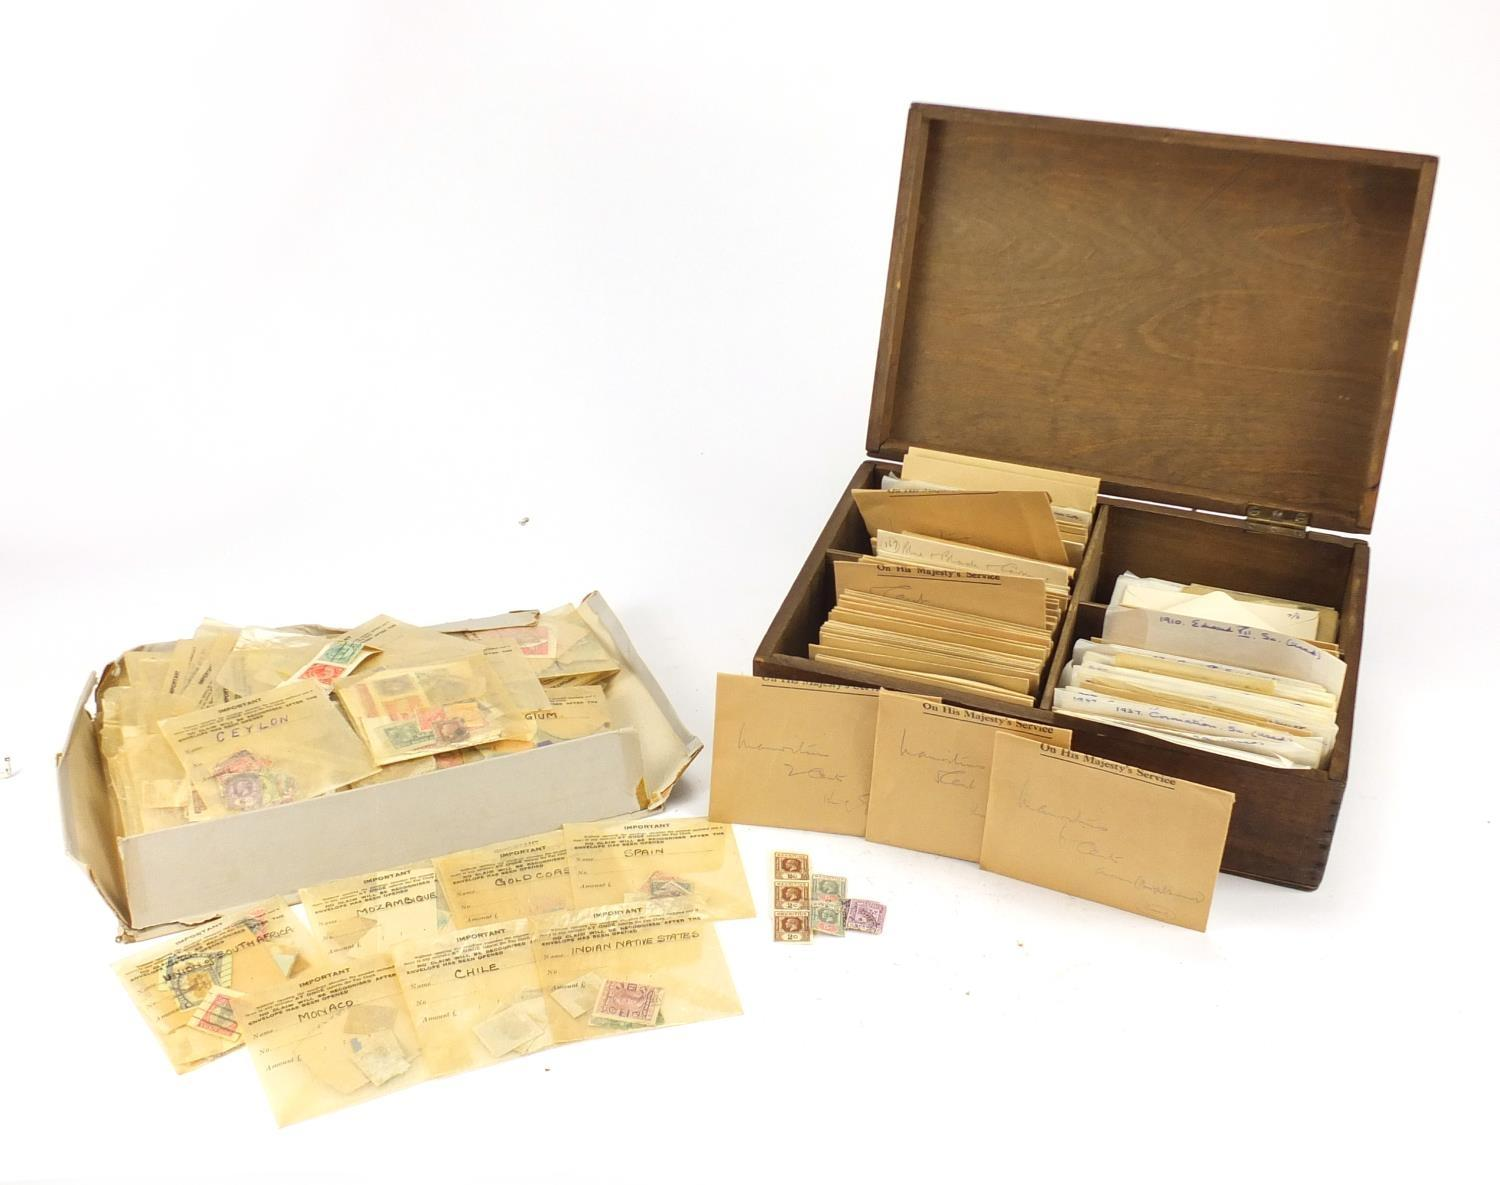 Lot 1082 - Large collection of loose British and World stamps : For Further Condition Reports Please visit